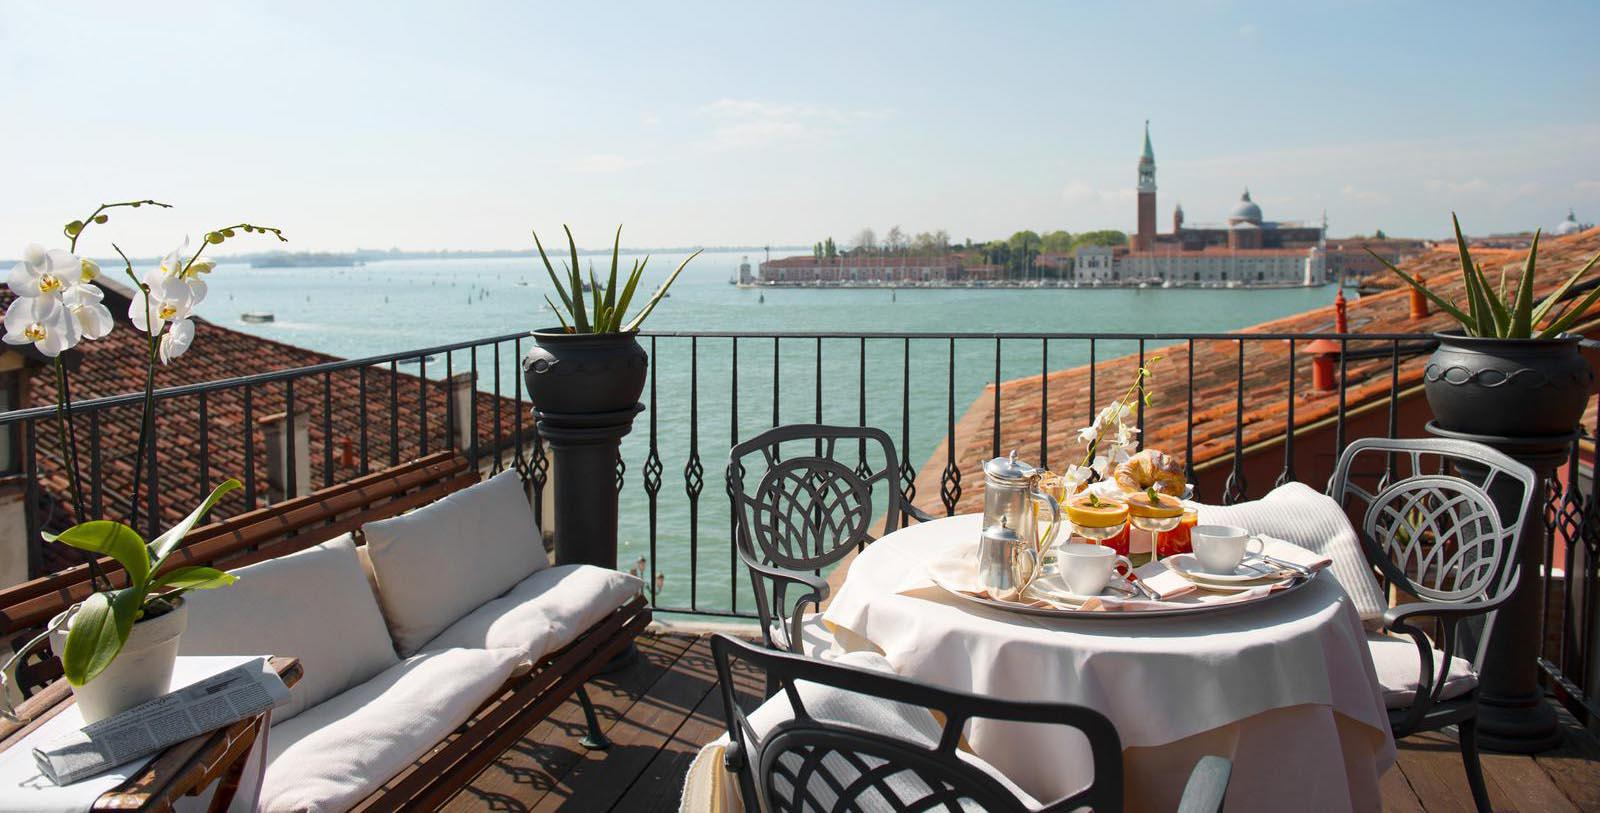 Image of Dining on Balcony Metropole Hotel, 1500, Member of Historic Hotels Worldwide, in Venice, Italy, Explore